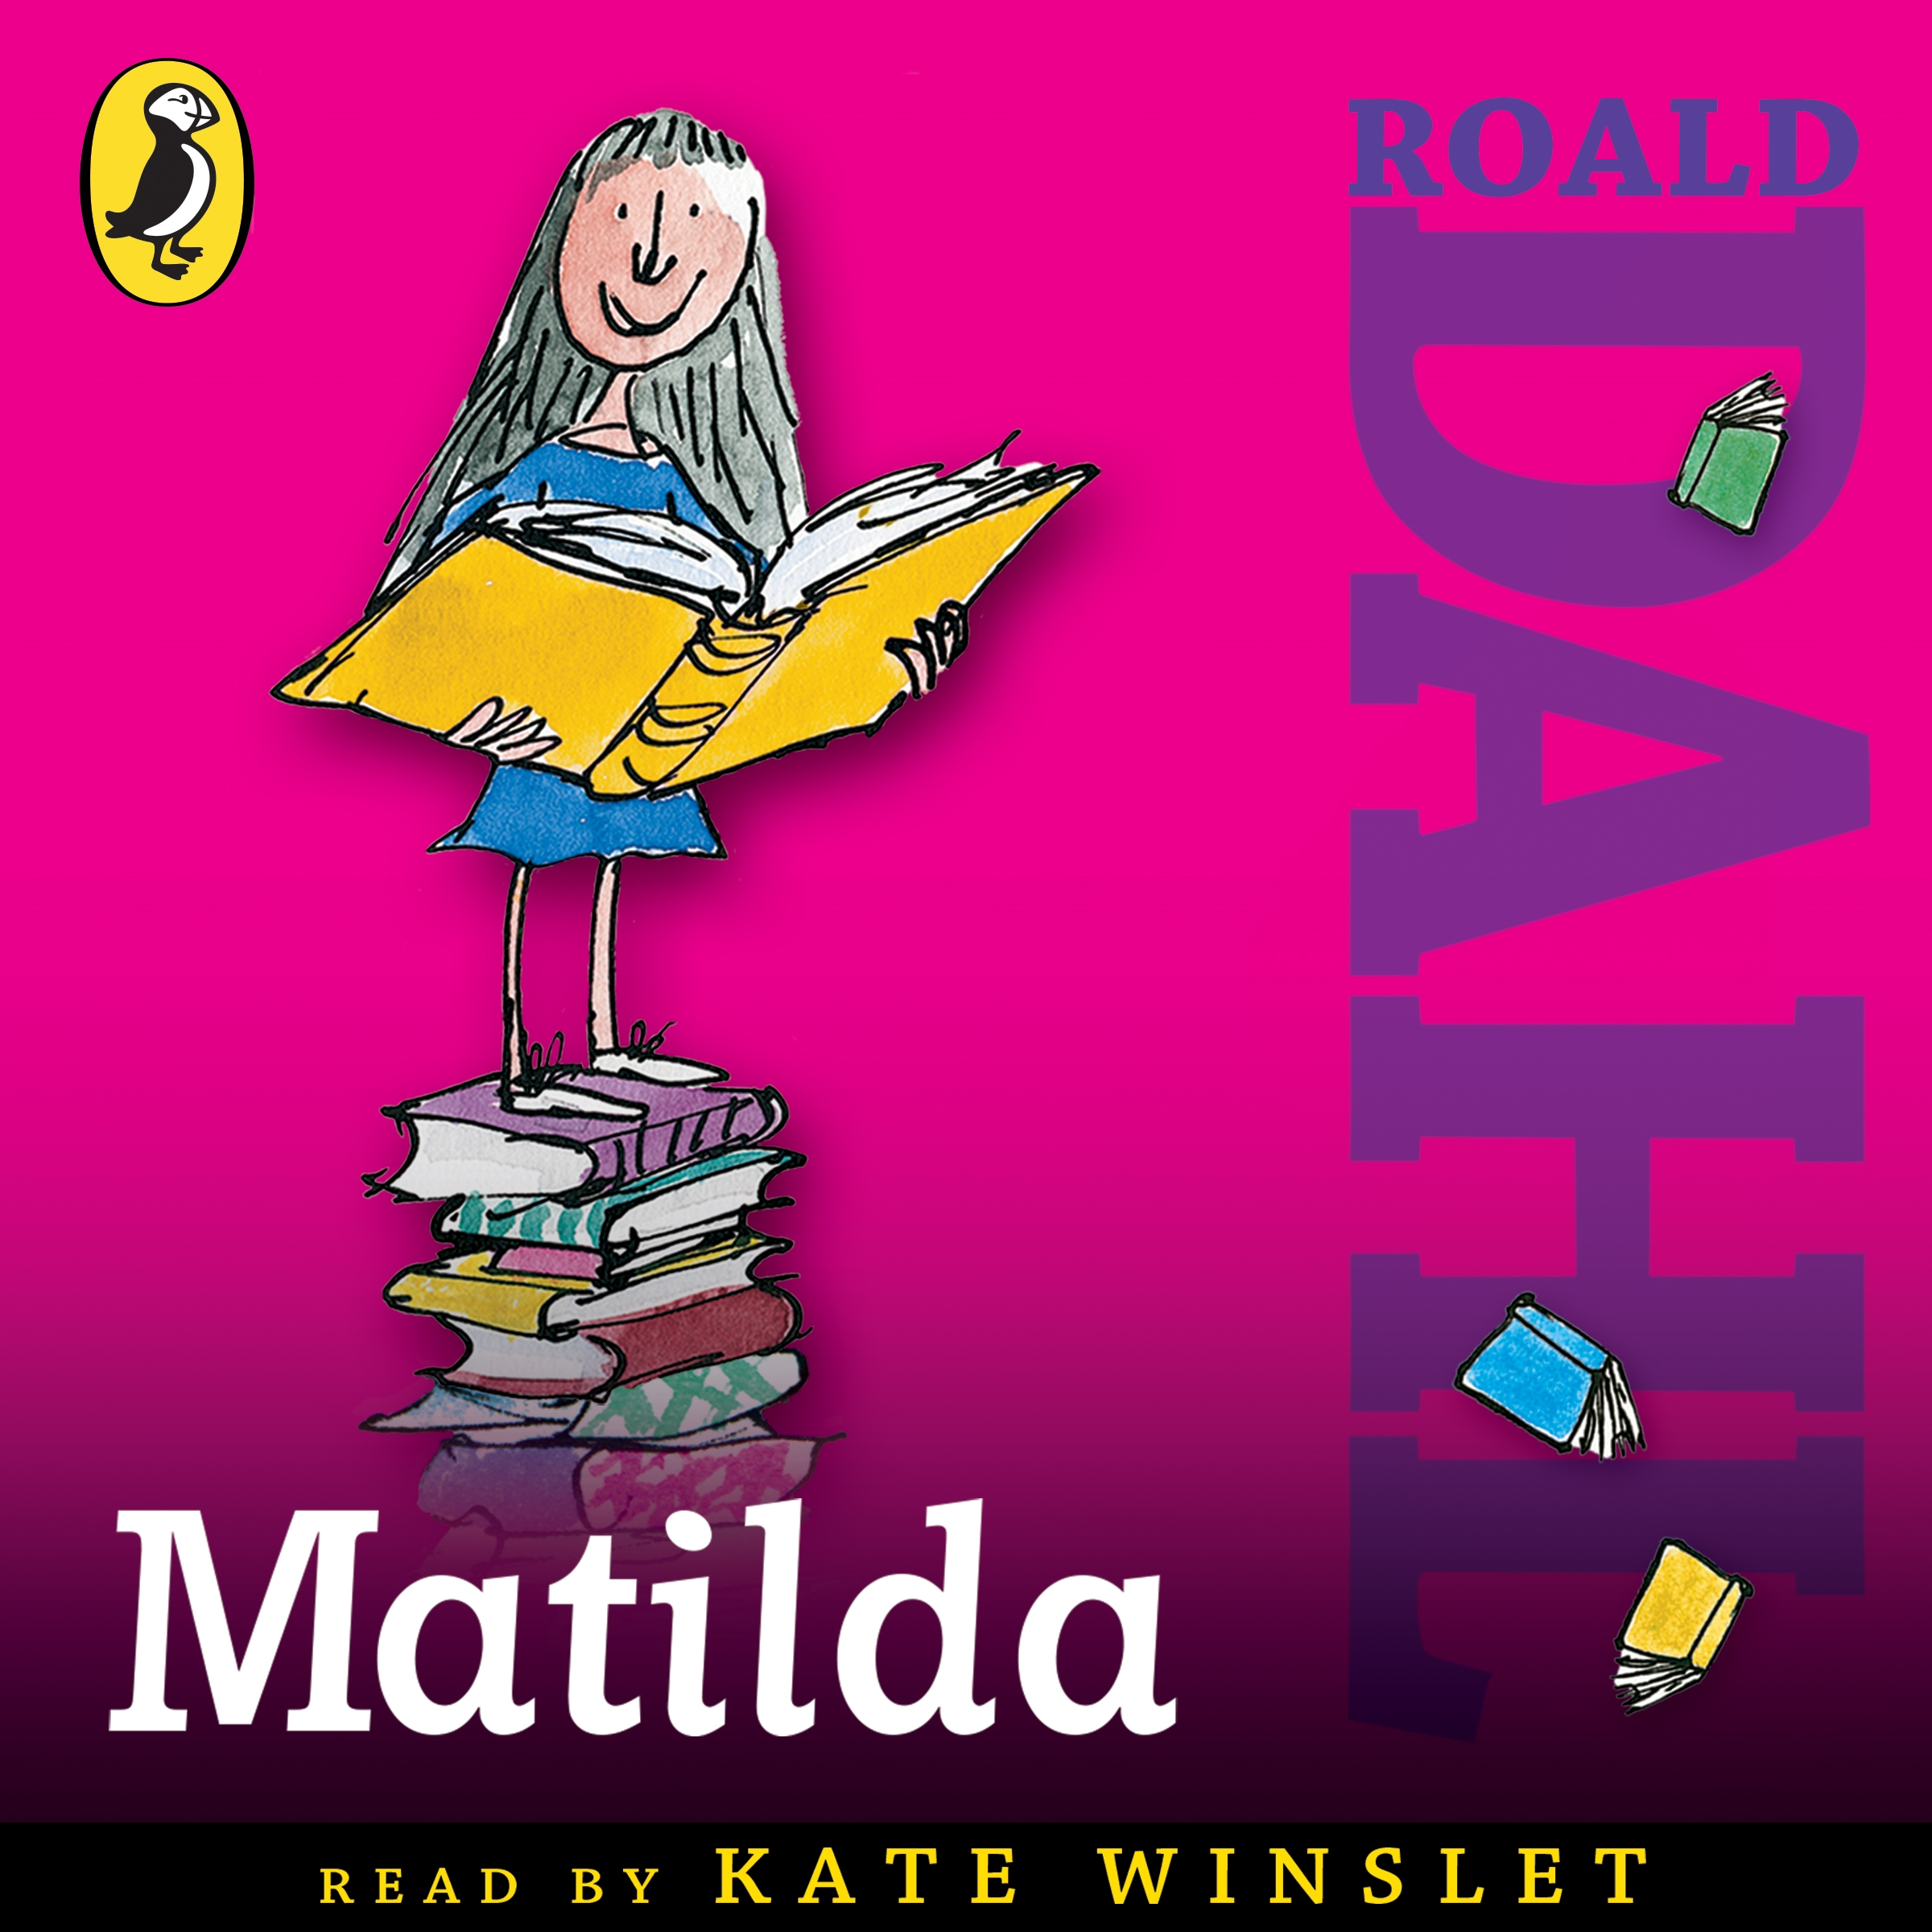 Roald Dahl Audio books - 10 titles on 27 CD's